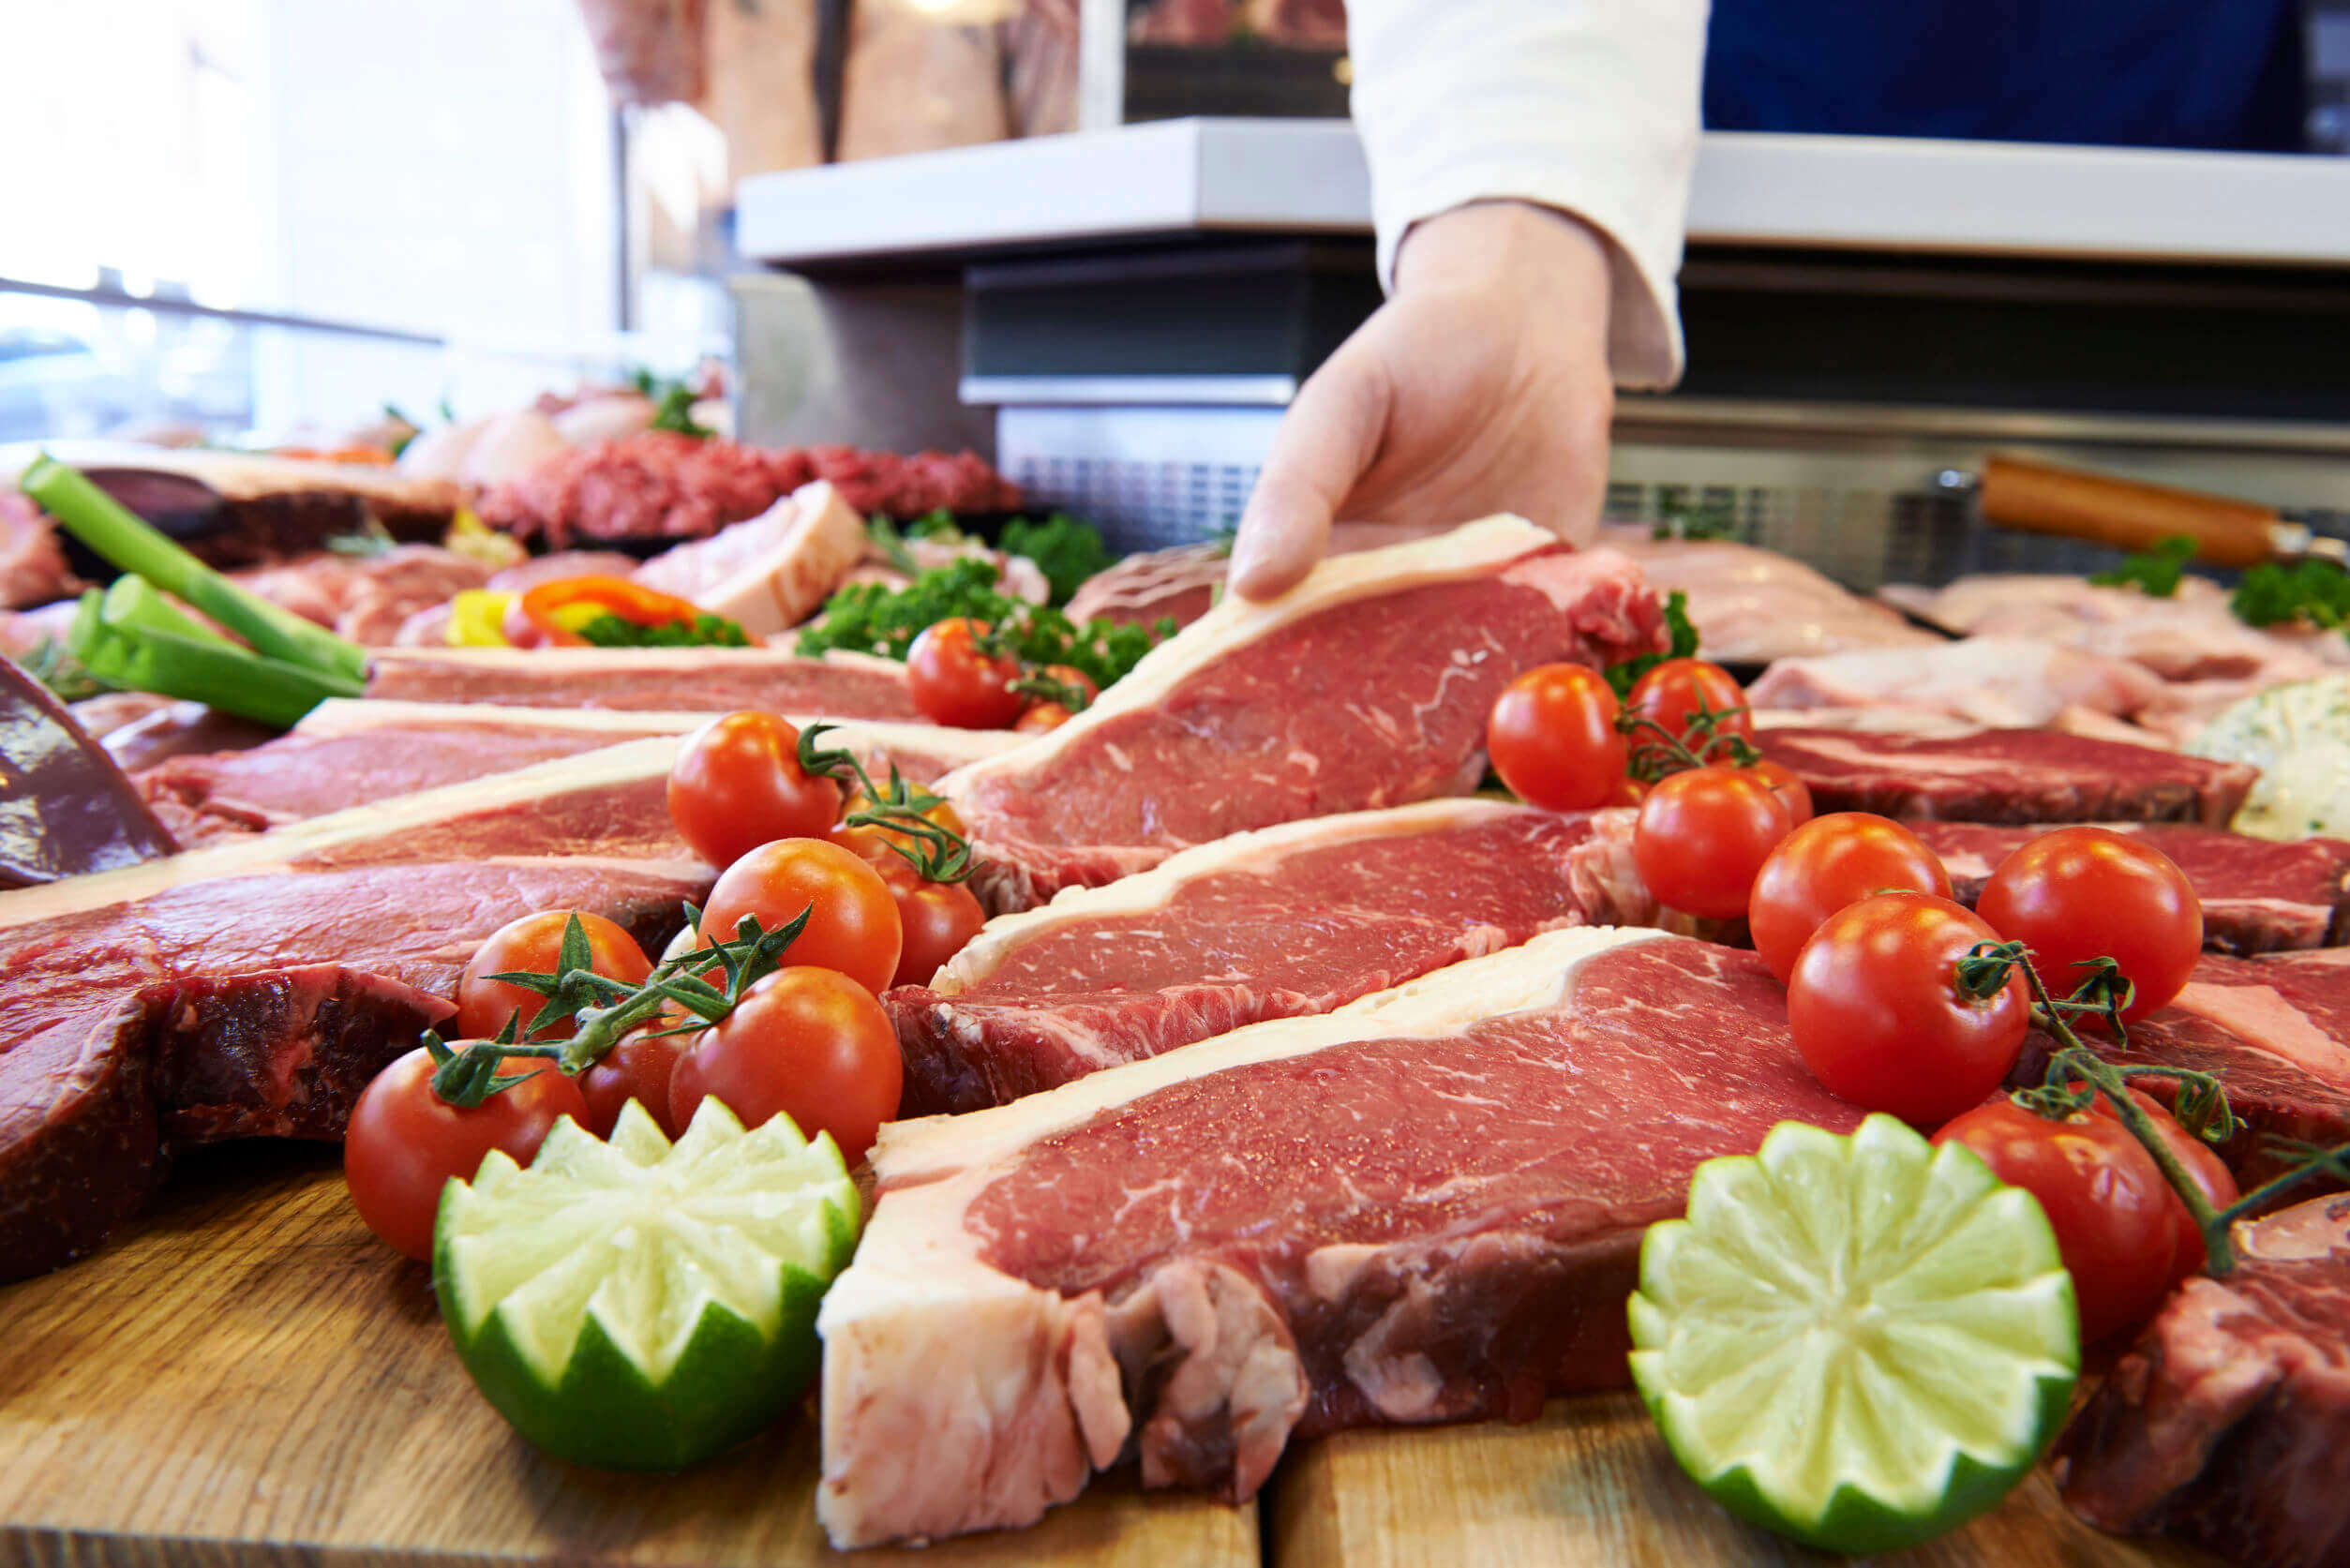 A person picking up a cut of beef.